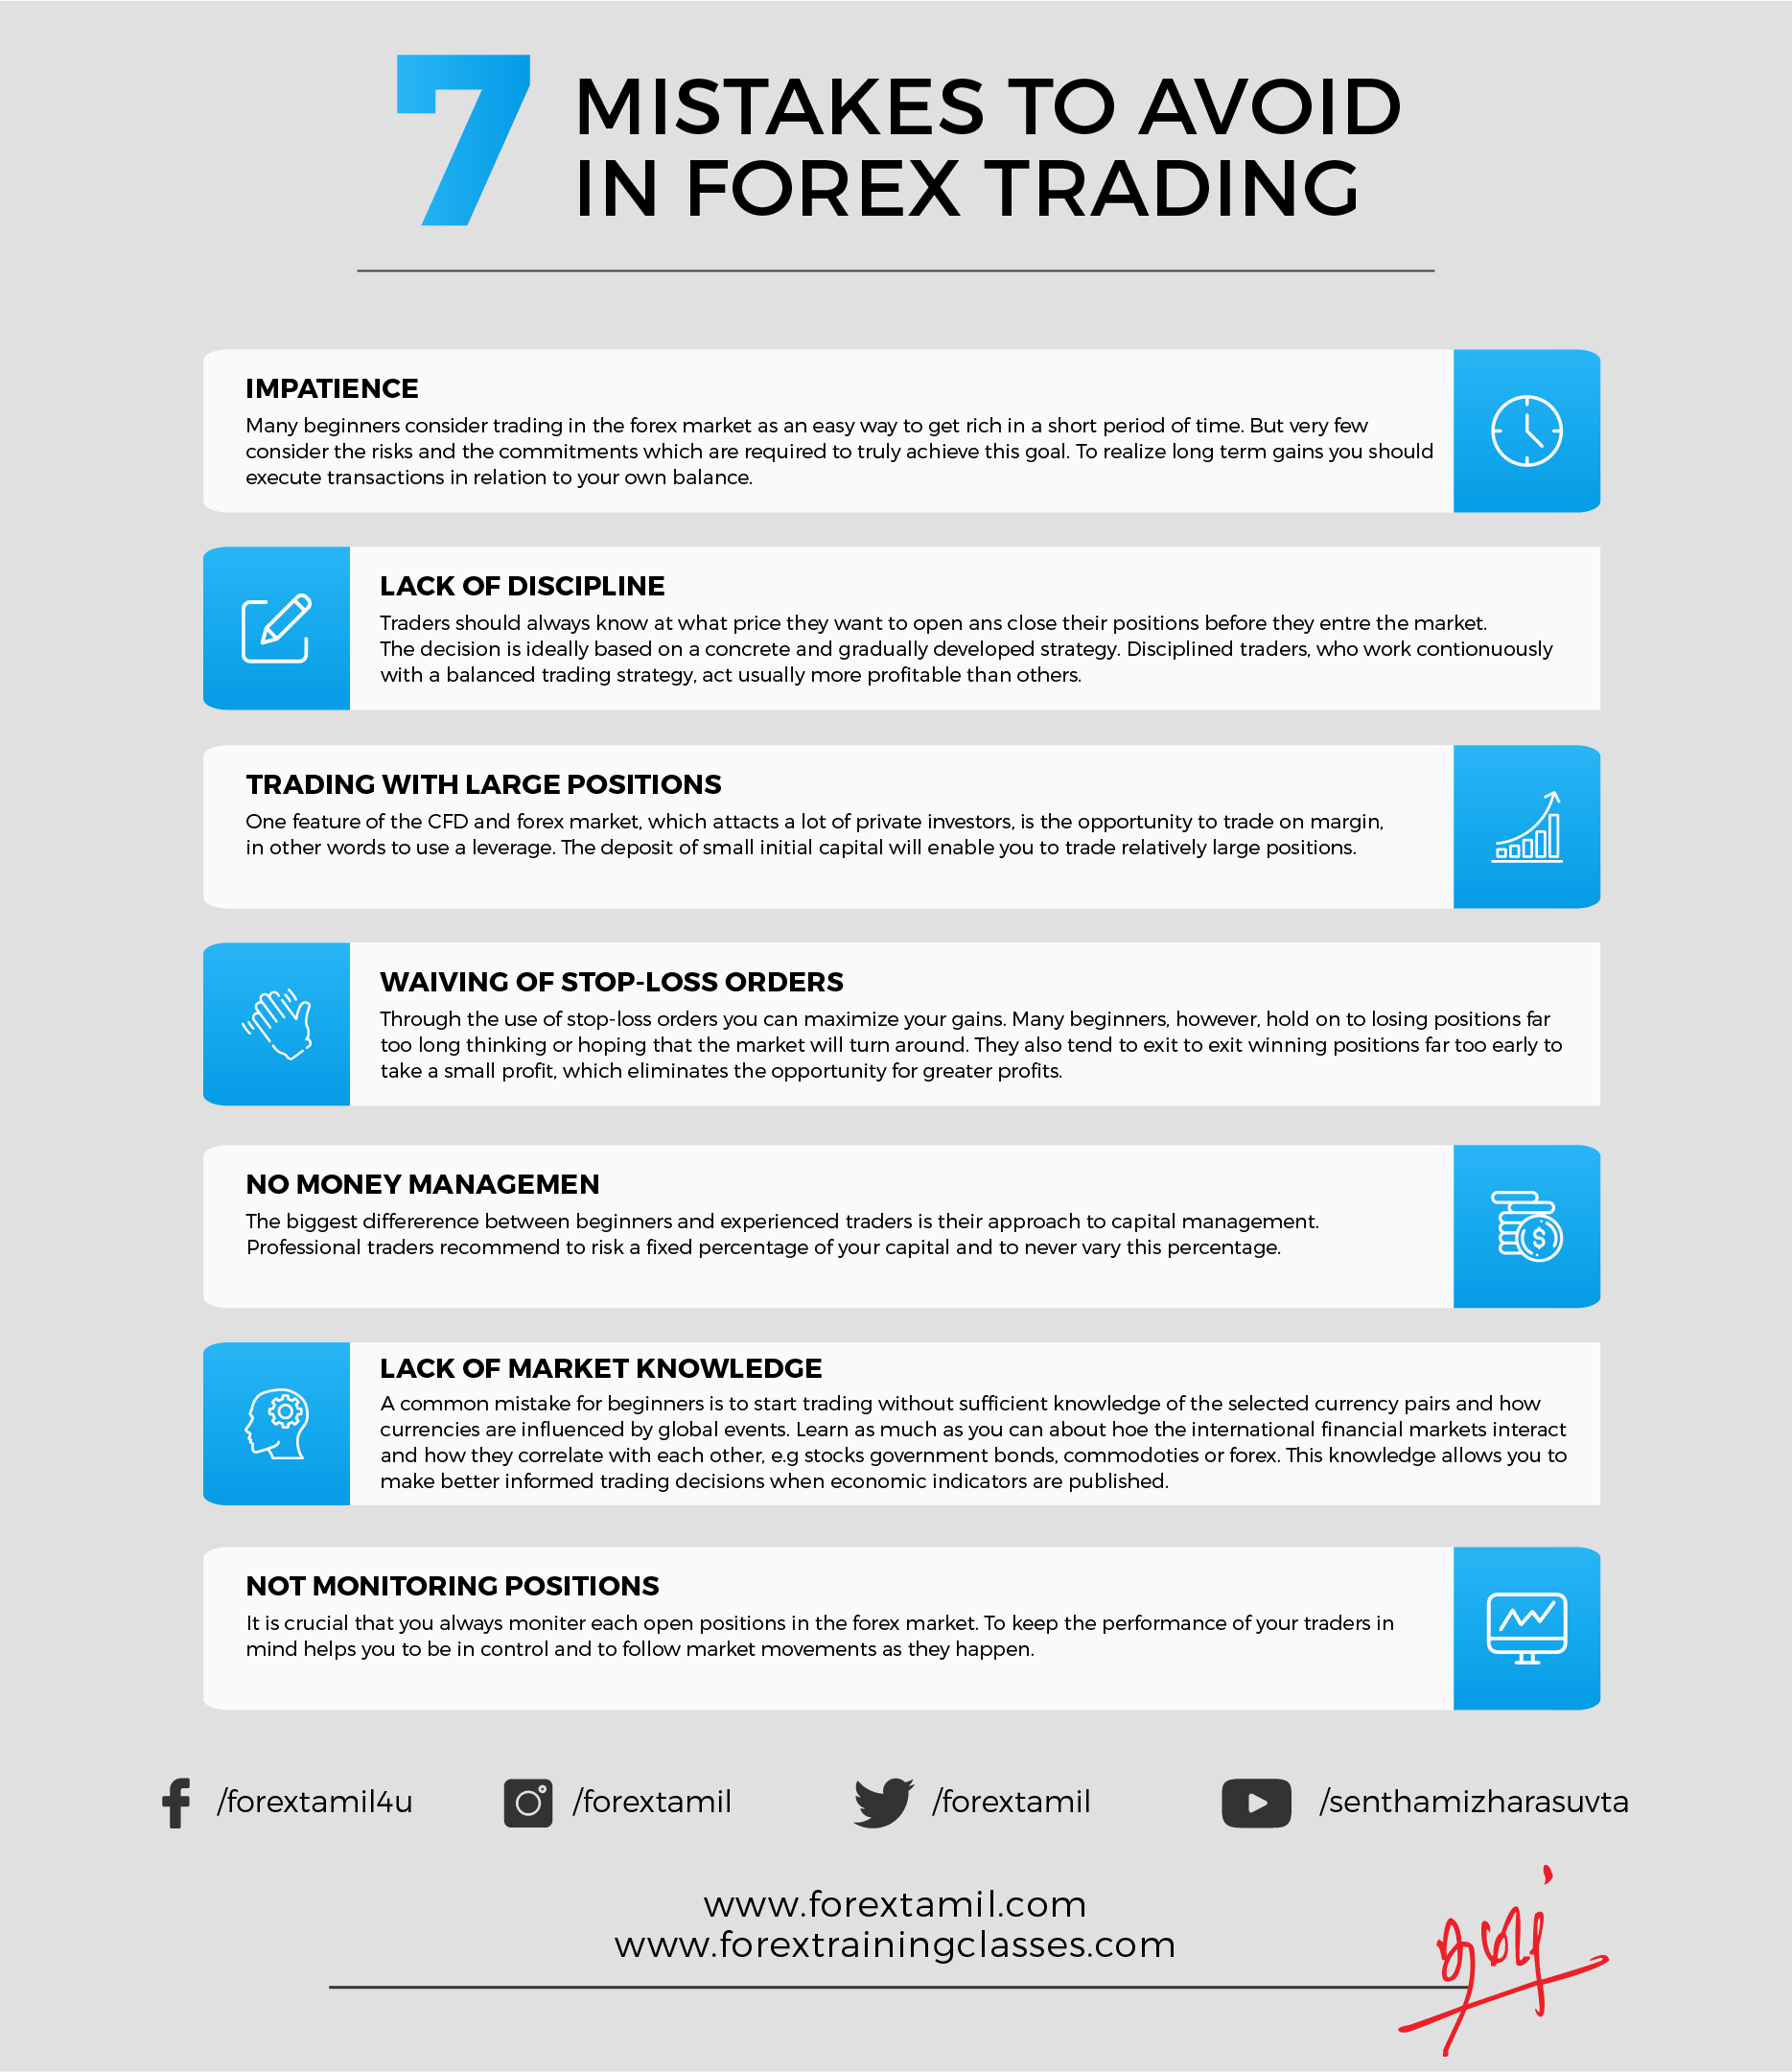 7 mistakes to avoid in Forex trading